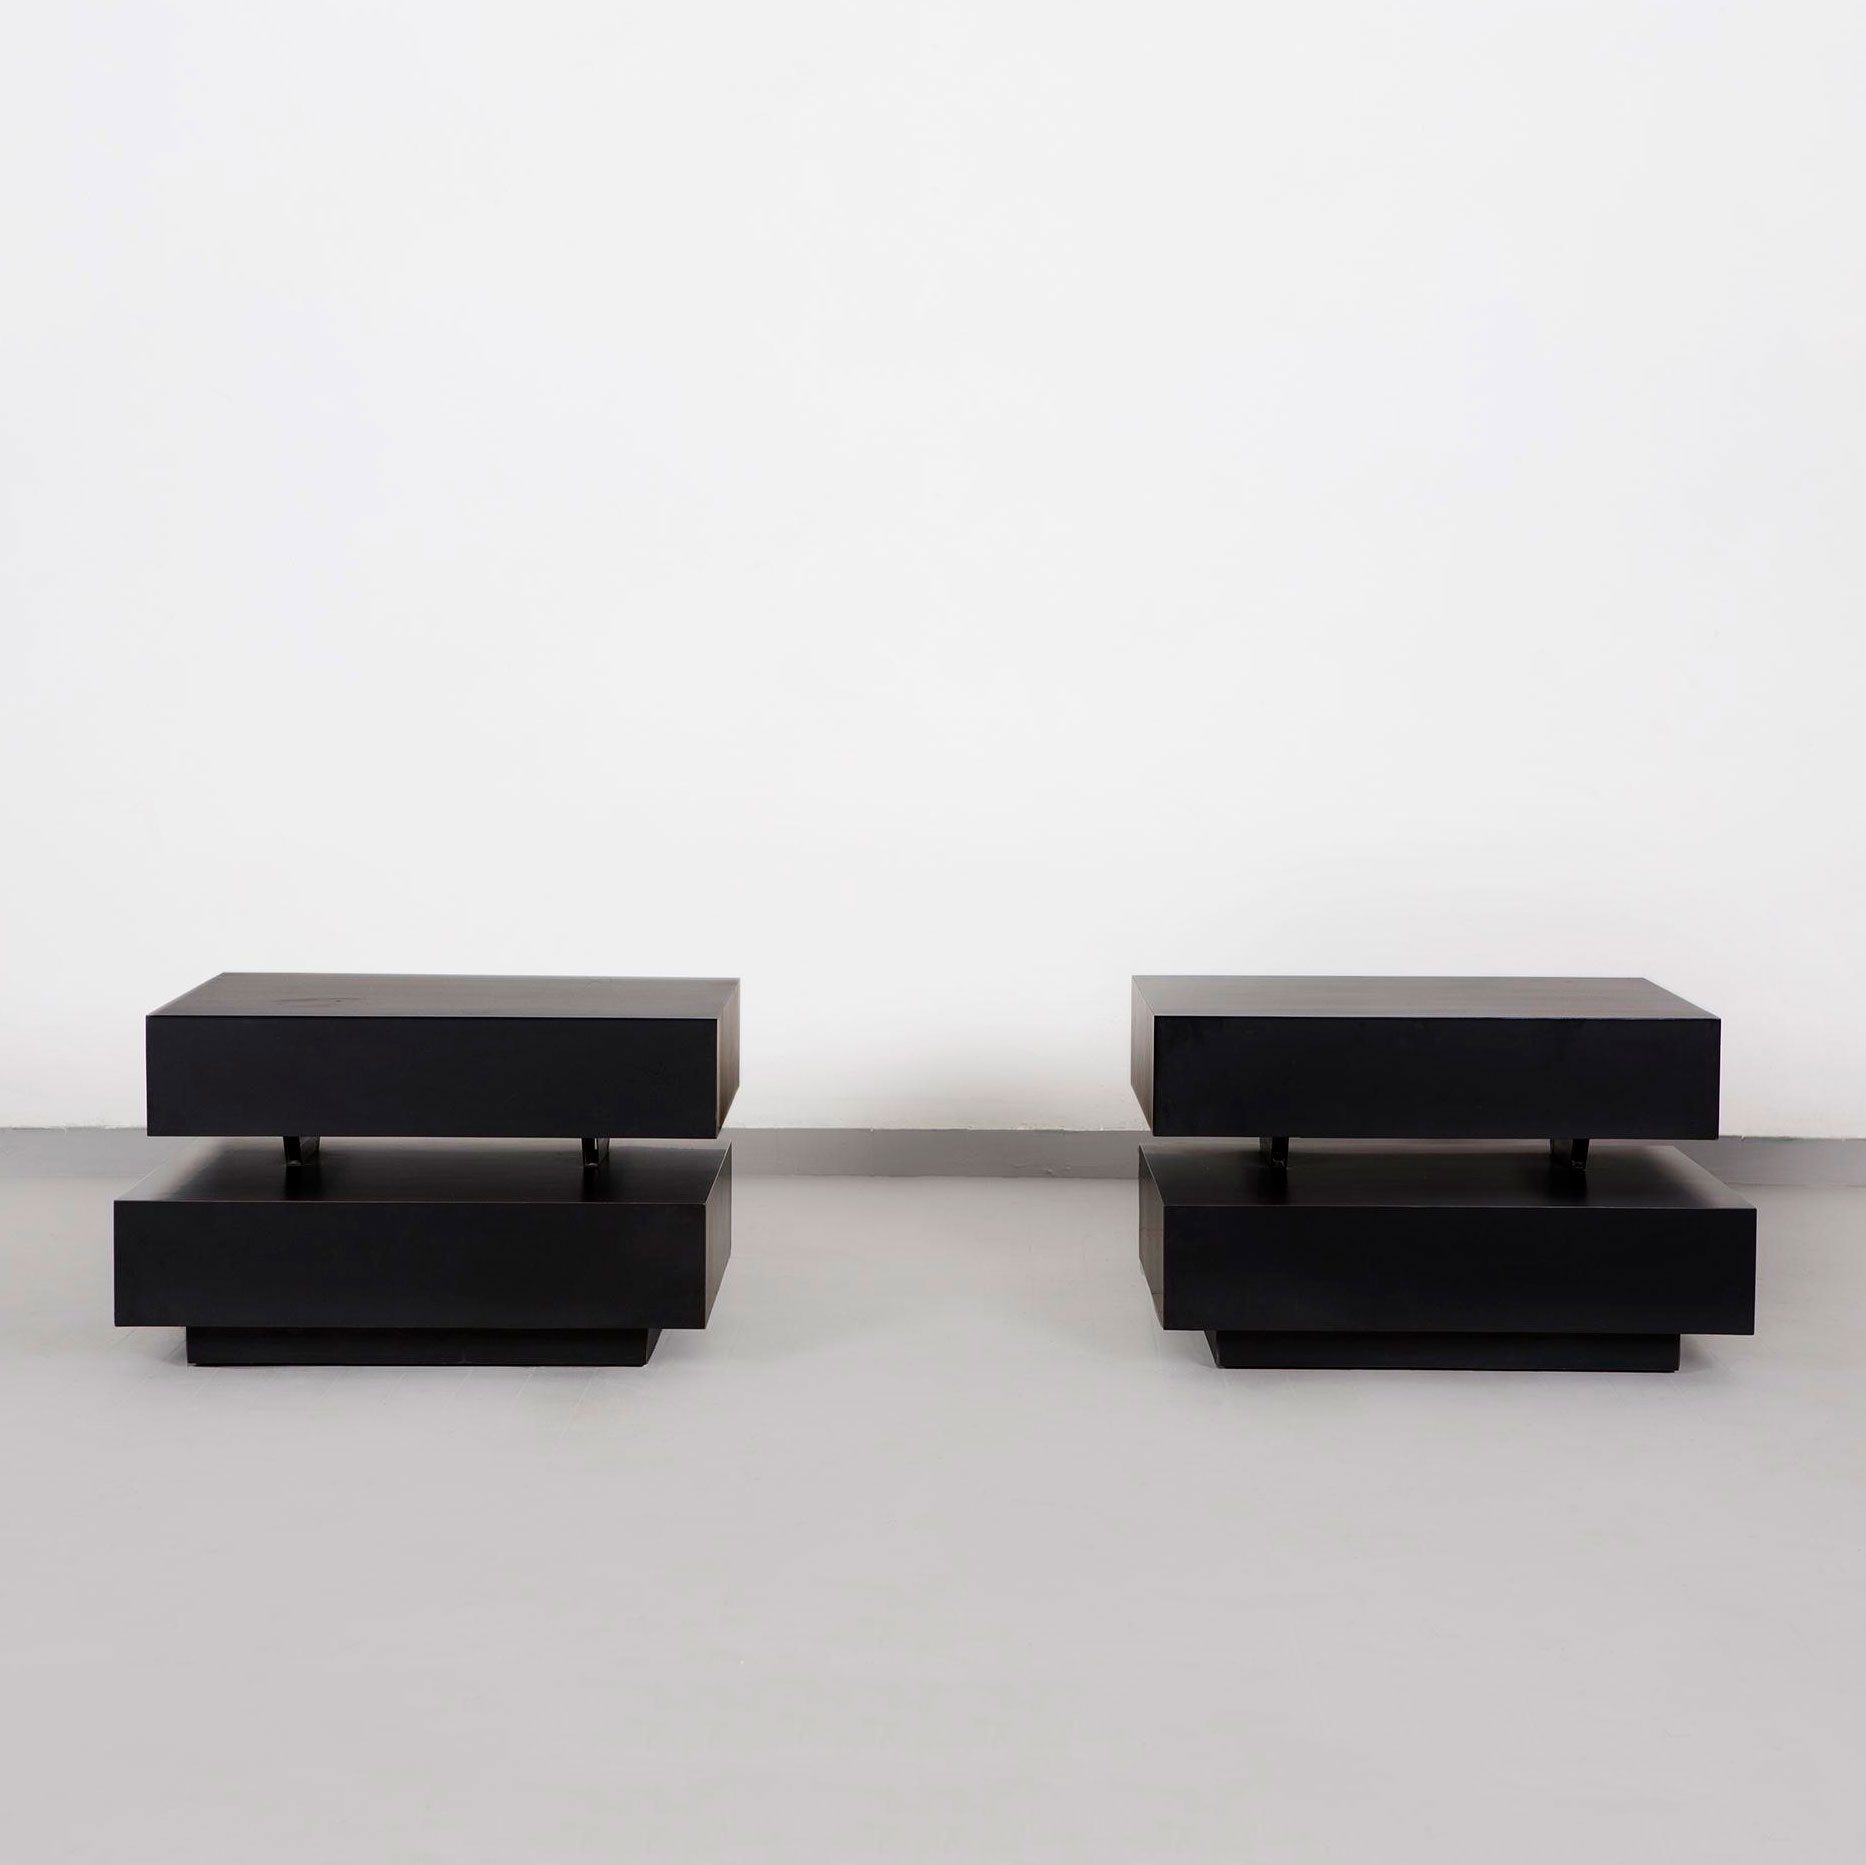 Gabriella Crespi  |                                  Pair of low tables